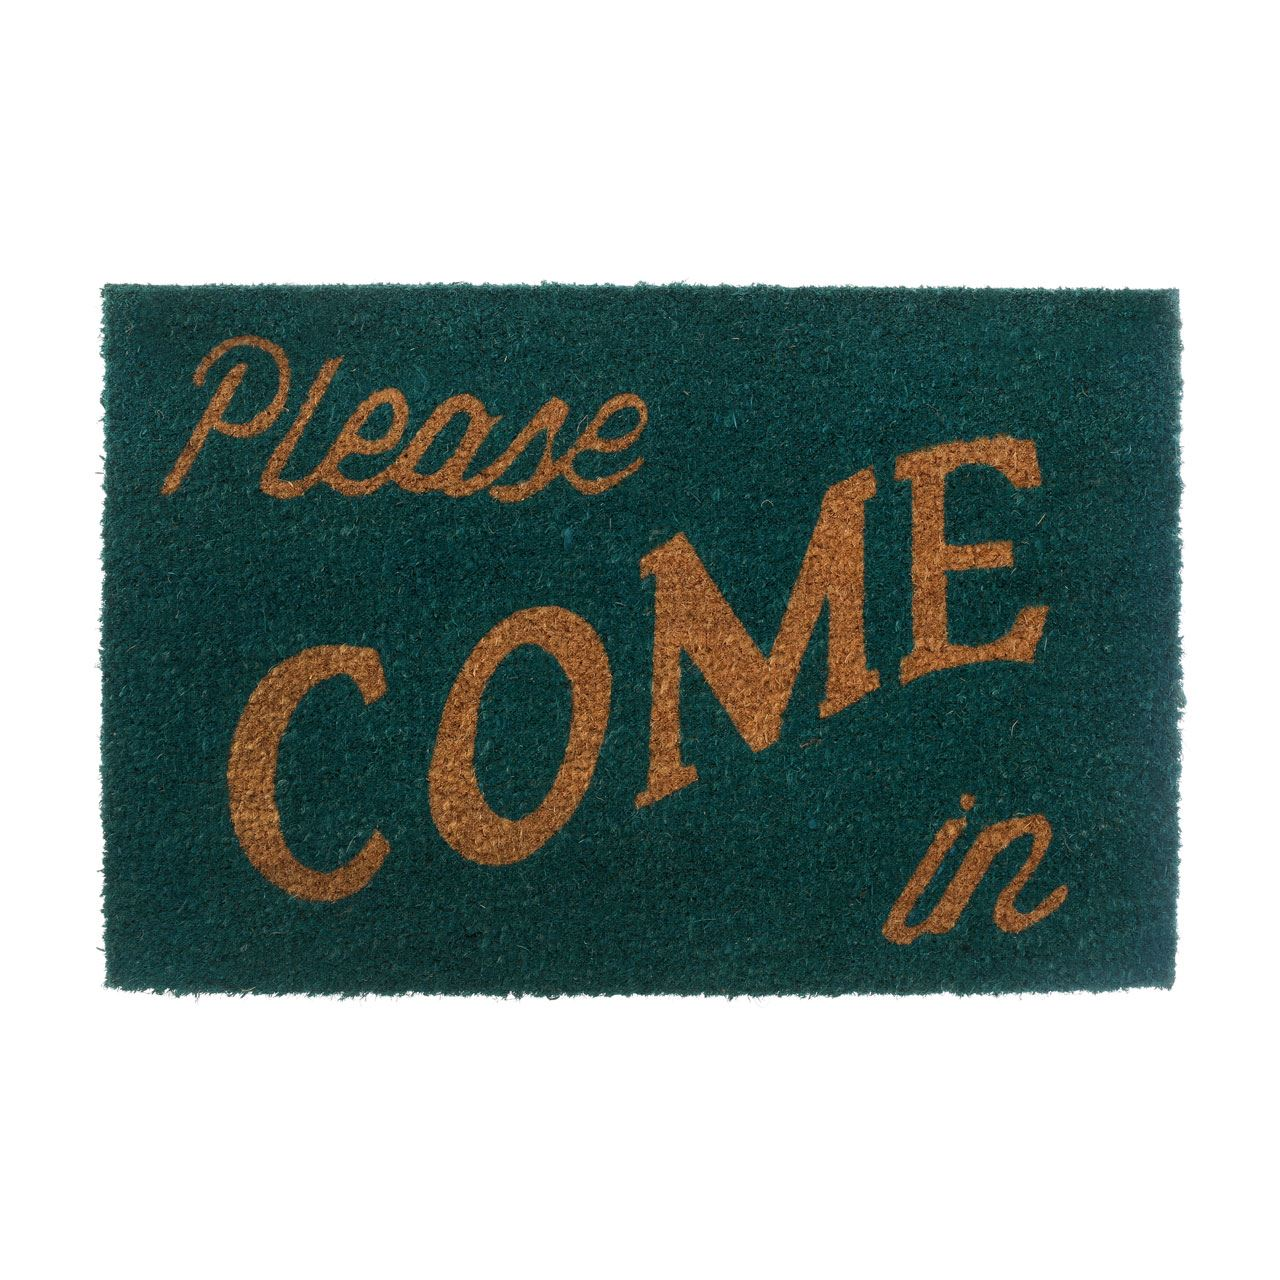 Please Come In Doormat,Coir/Pvc Backed,Green/Natural